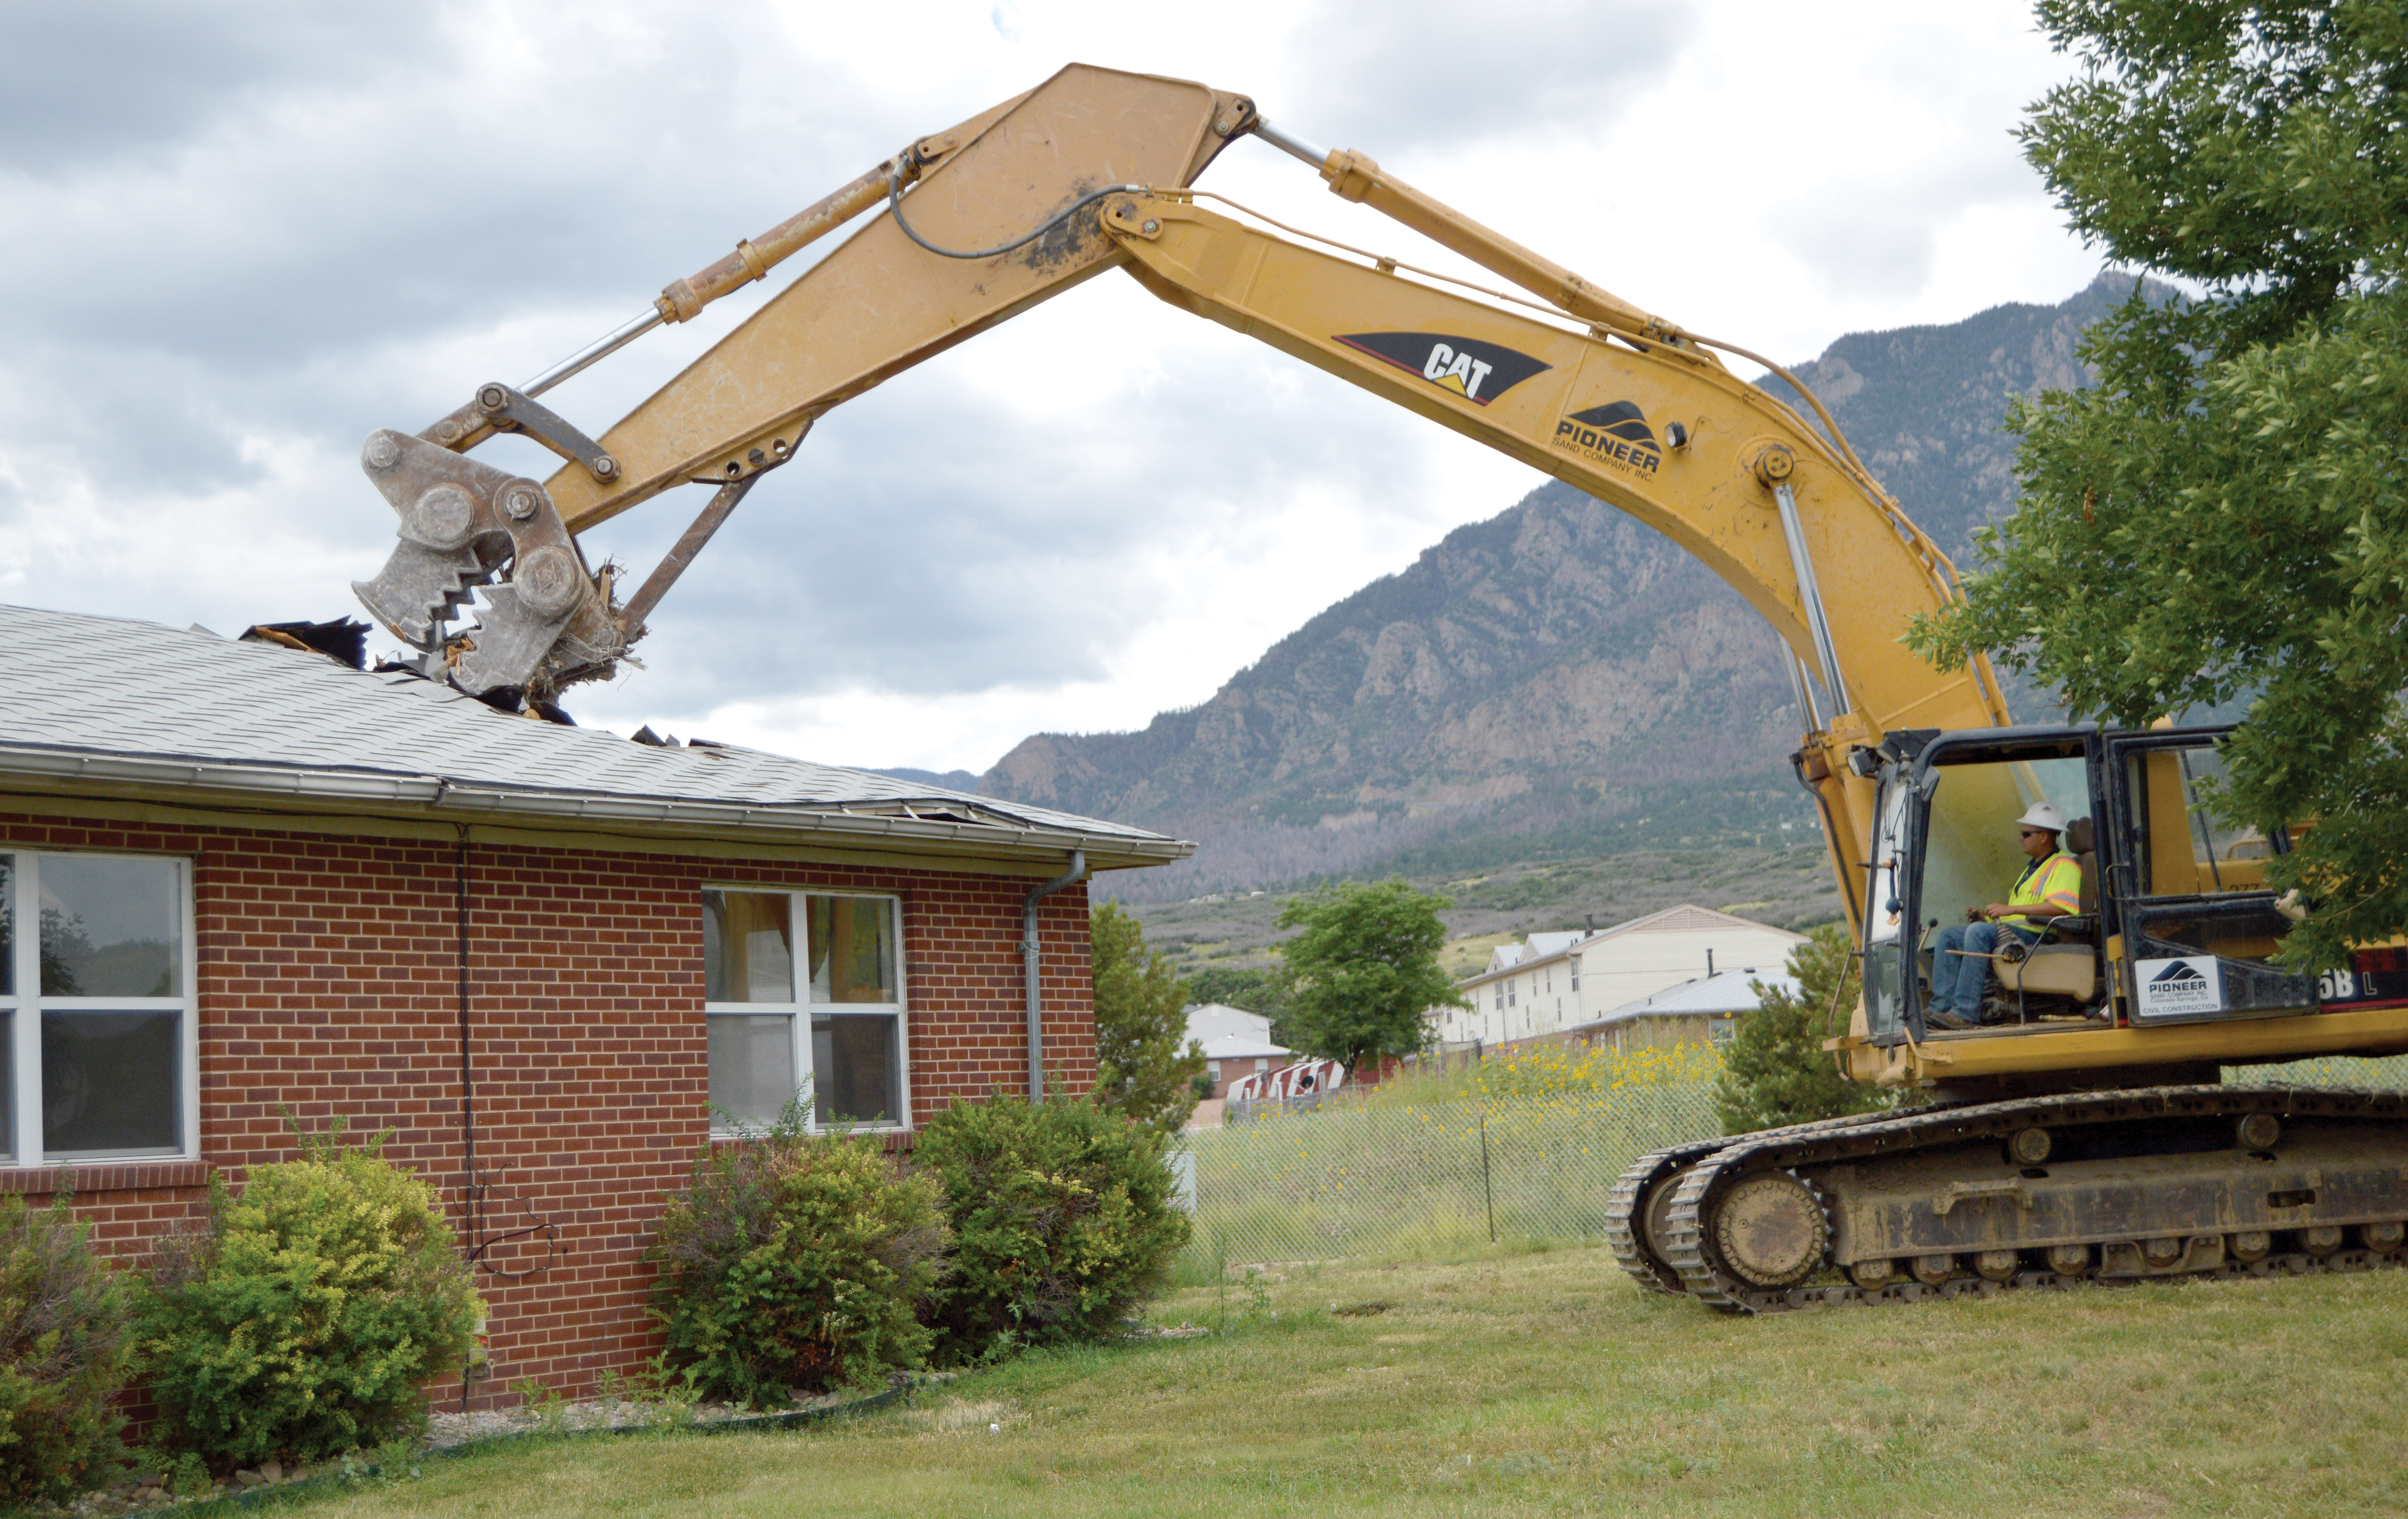 Shed Demolition Project : Demolition projects costs what to expect permitting